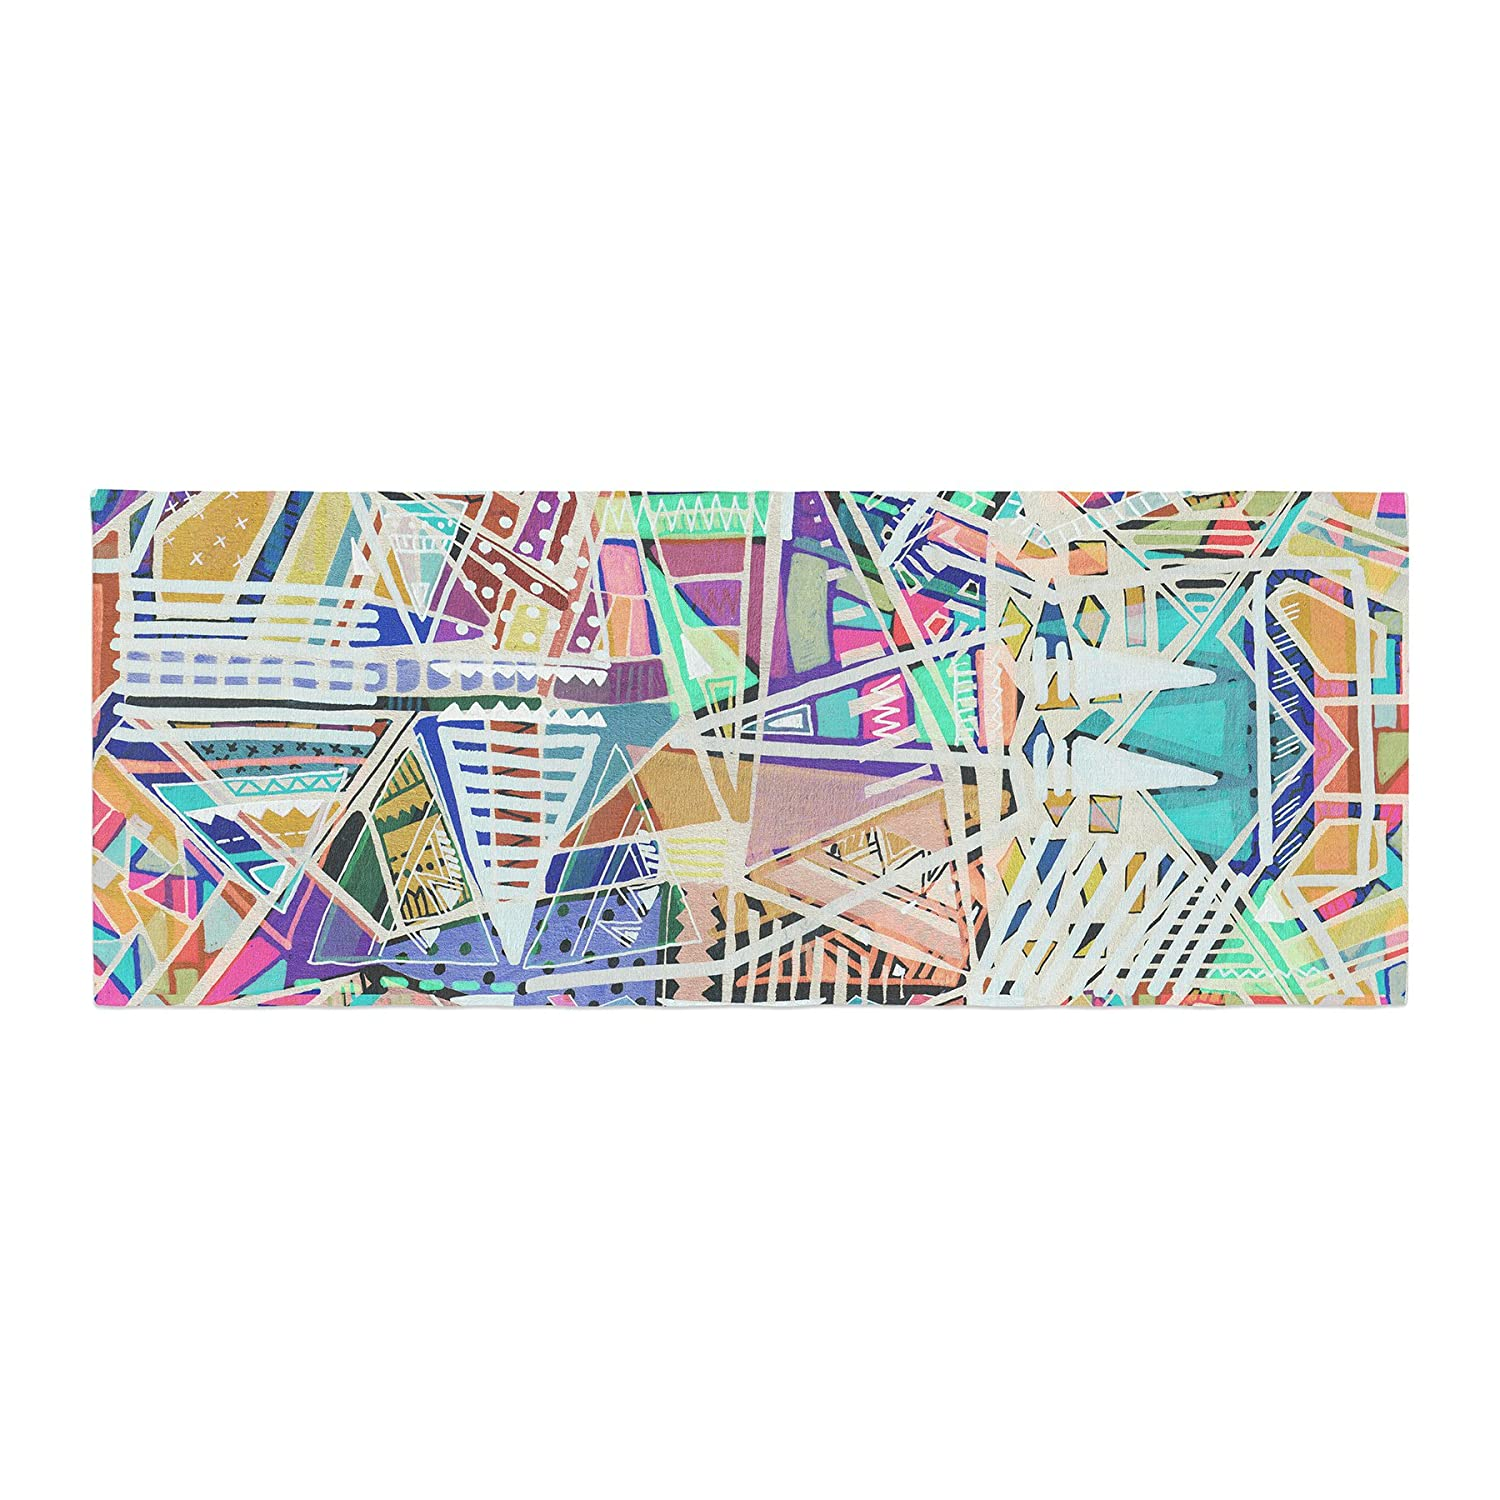 Kess InHouse Vasare NAR Abstract Geometric Playground Multicolor,Pastel Bed Runner